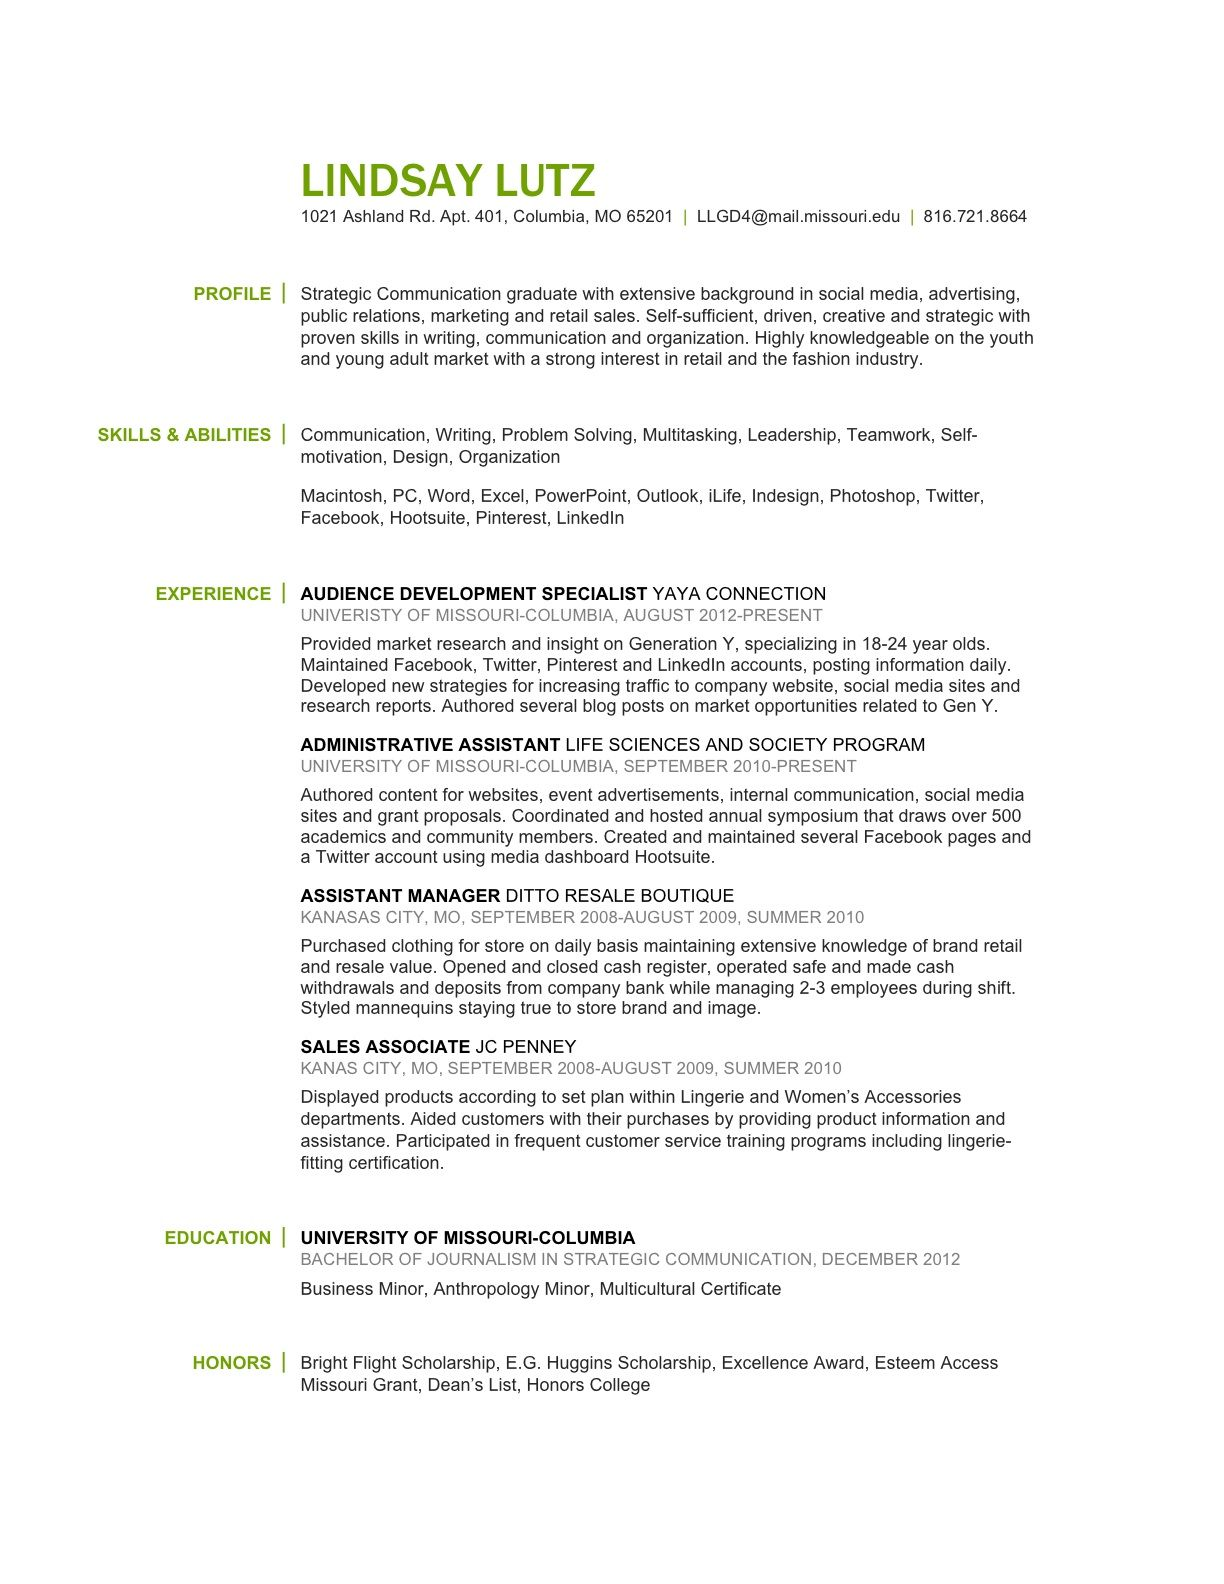 merchandiser retail representative part time resume sample strategic communication social media retail merchandising resume